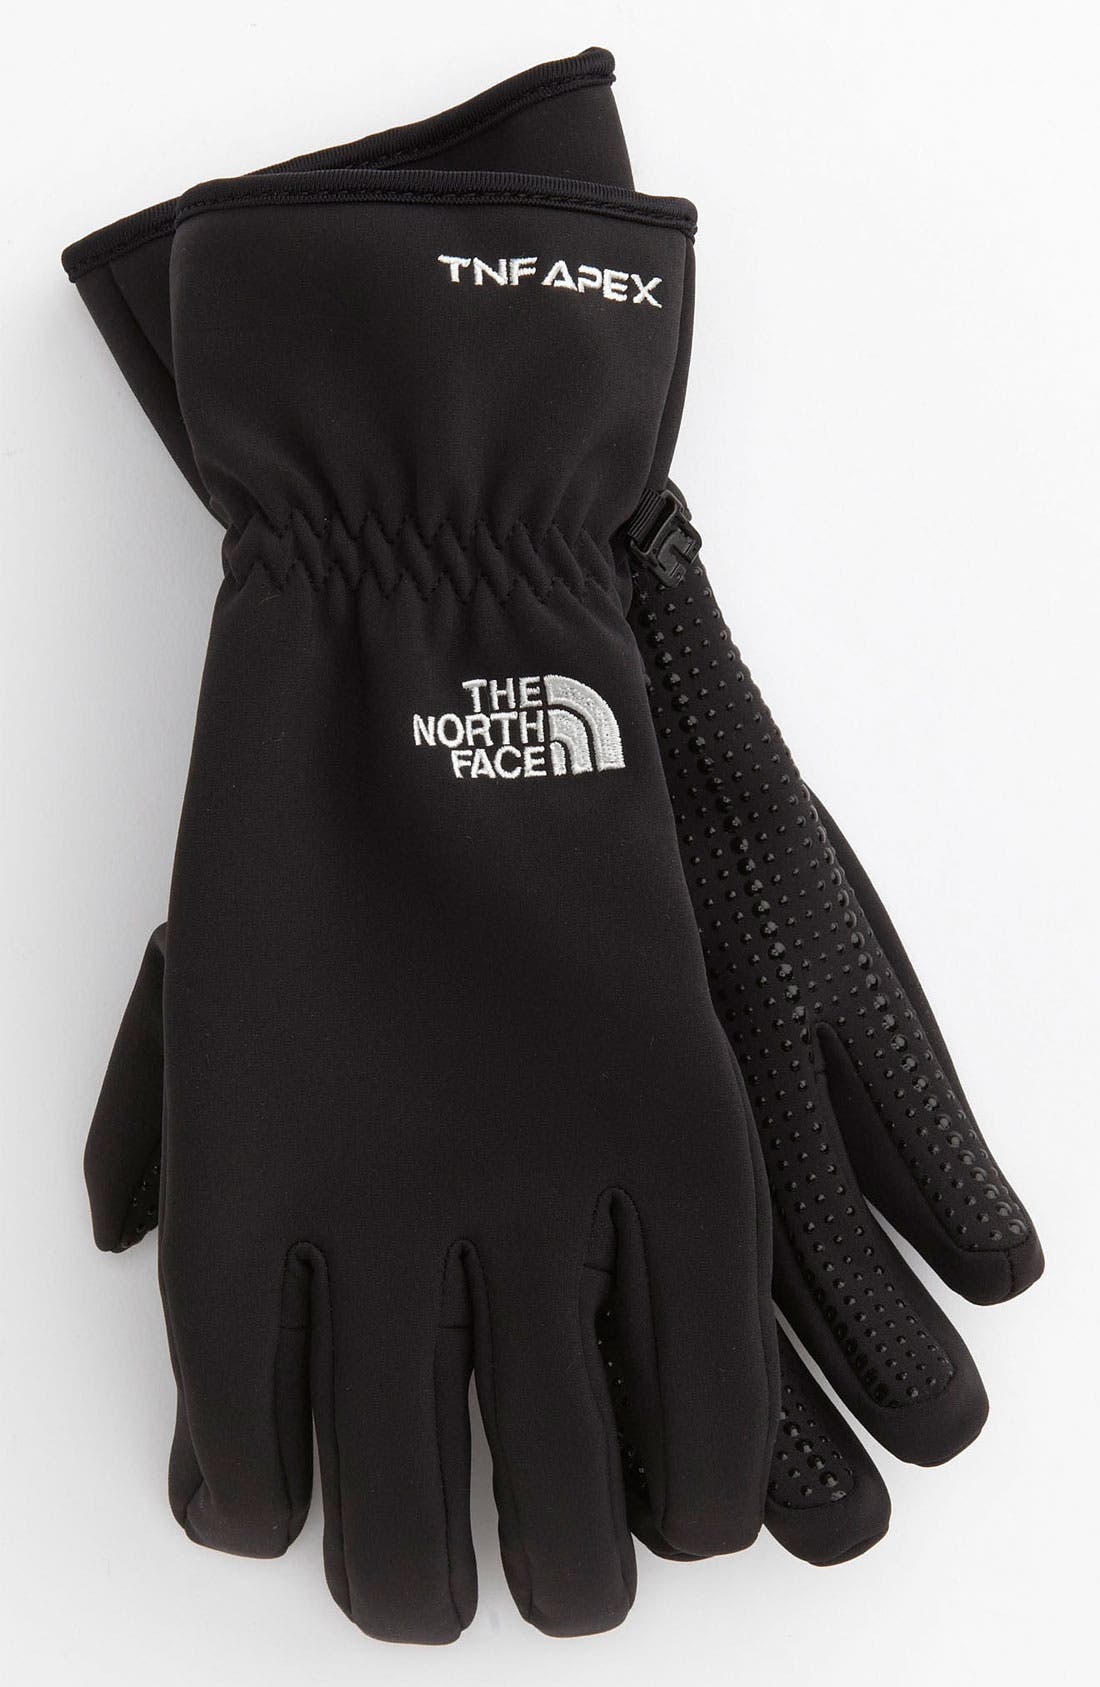 Main Image - The North Face 'Apex' Gloves